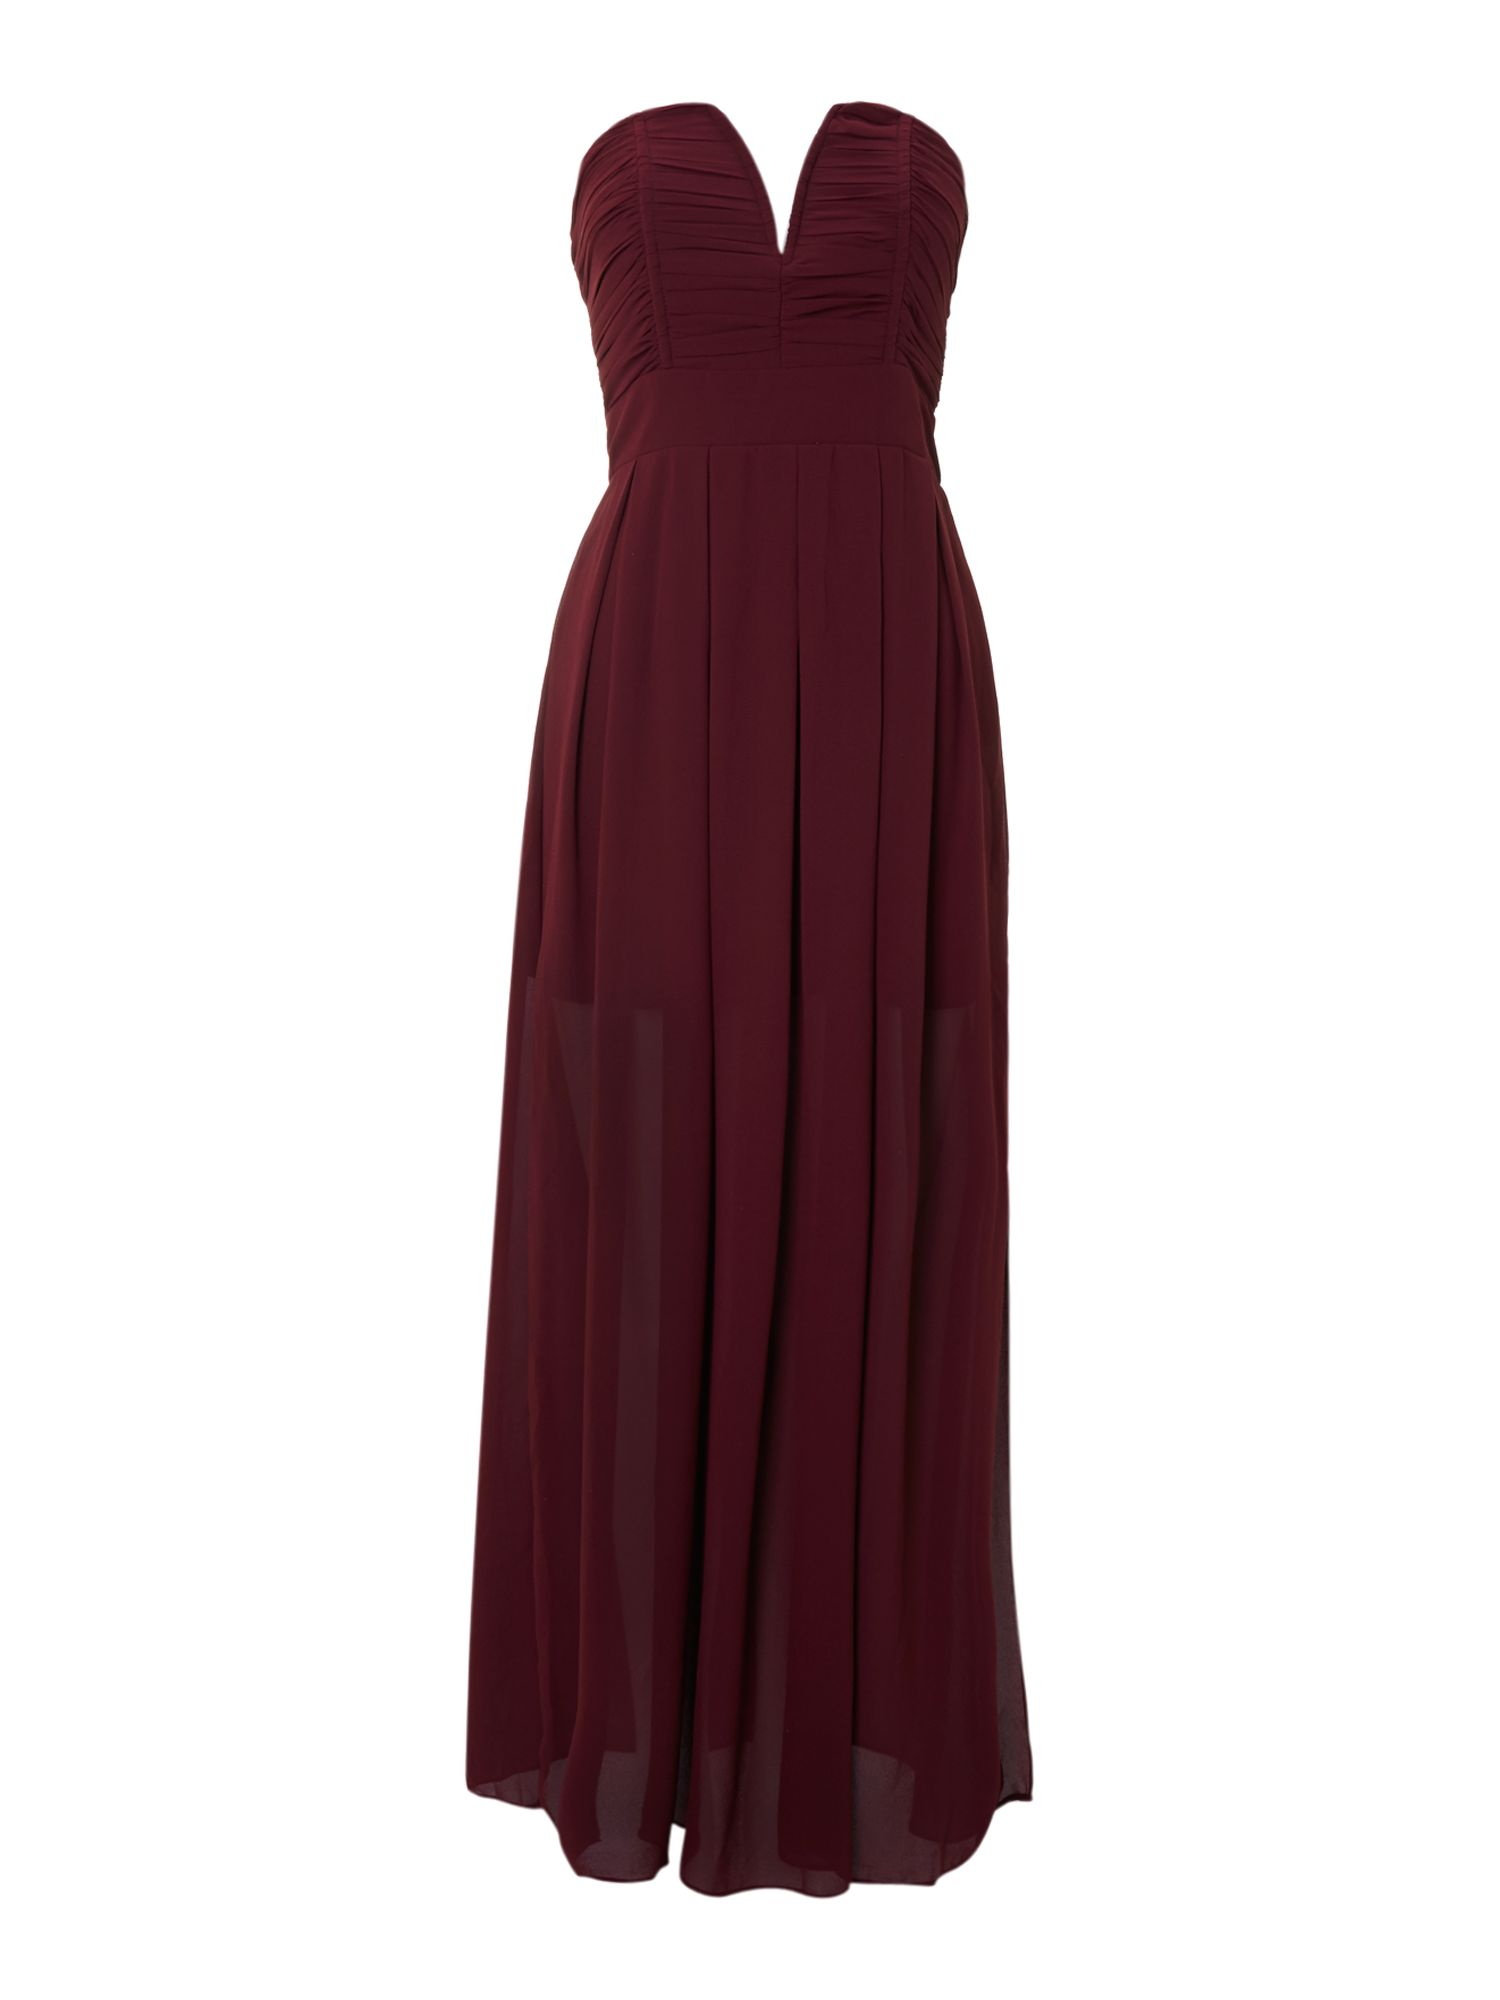 Tfnc Strapless Maxi Dress in Red (Blood Red) | Lyst